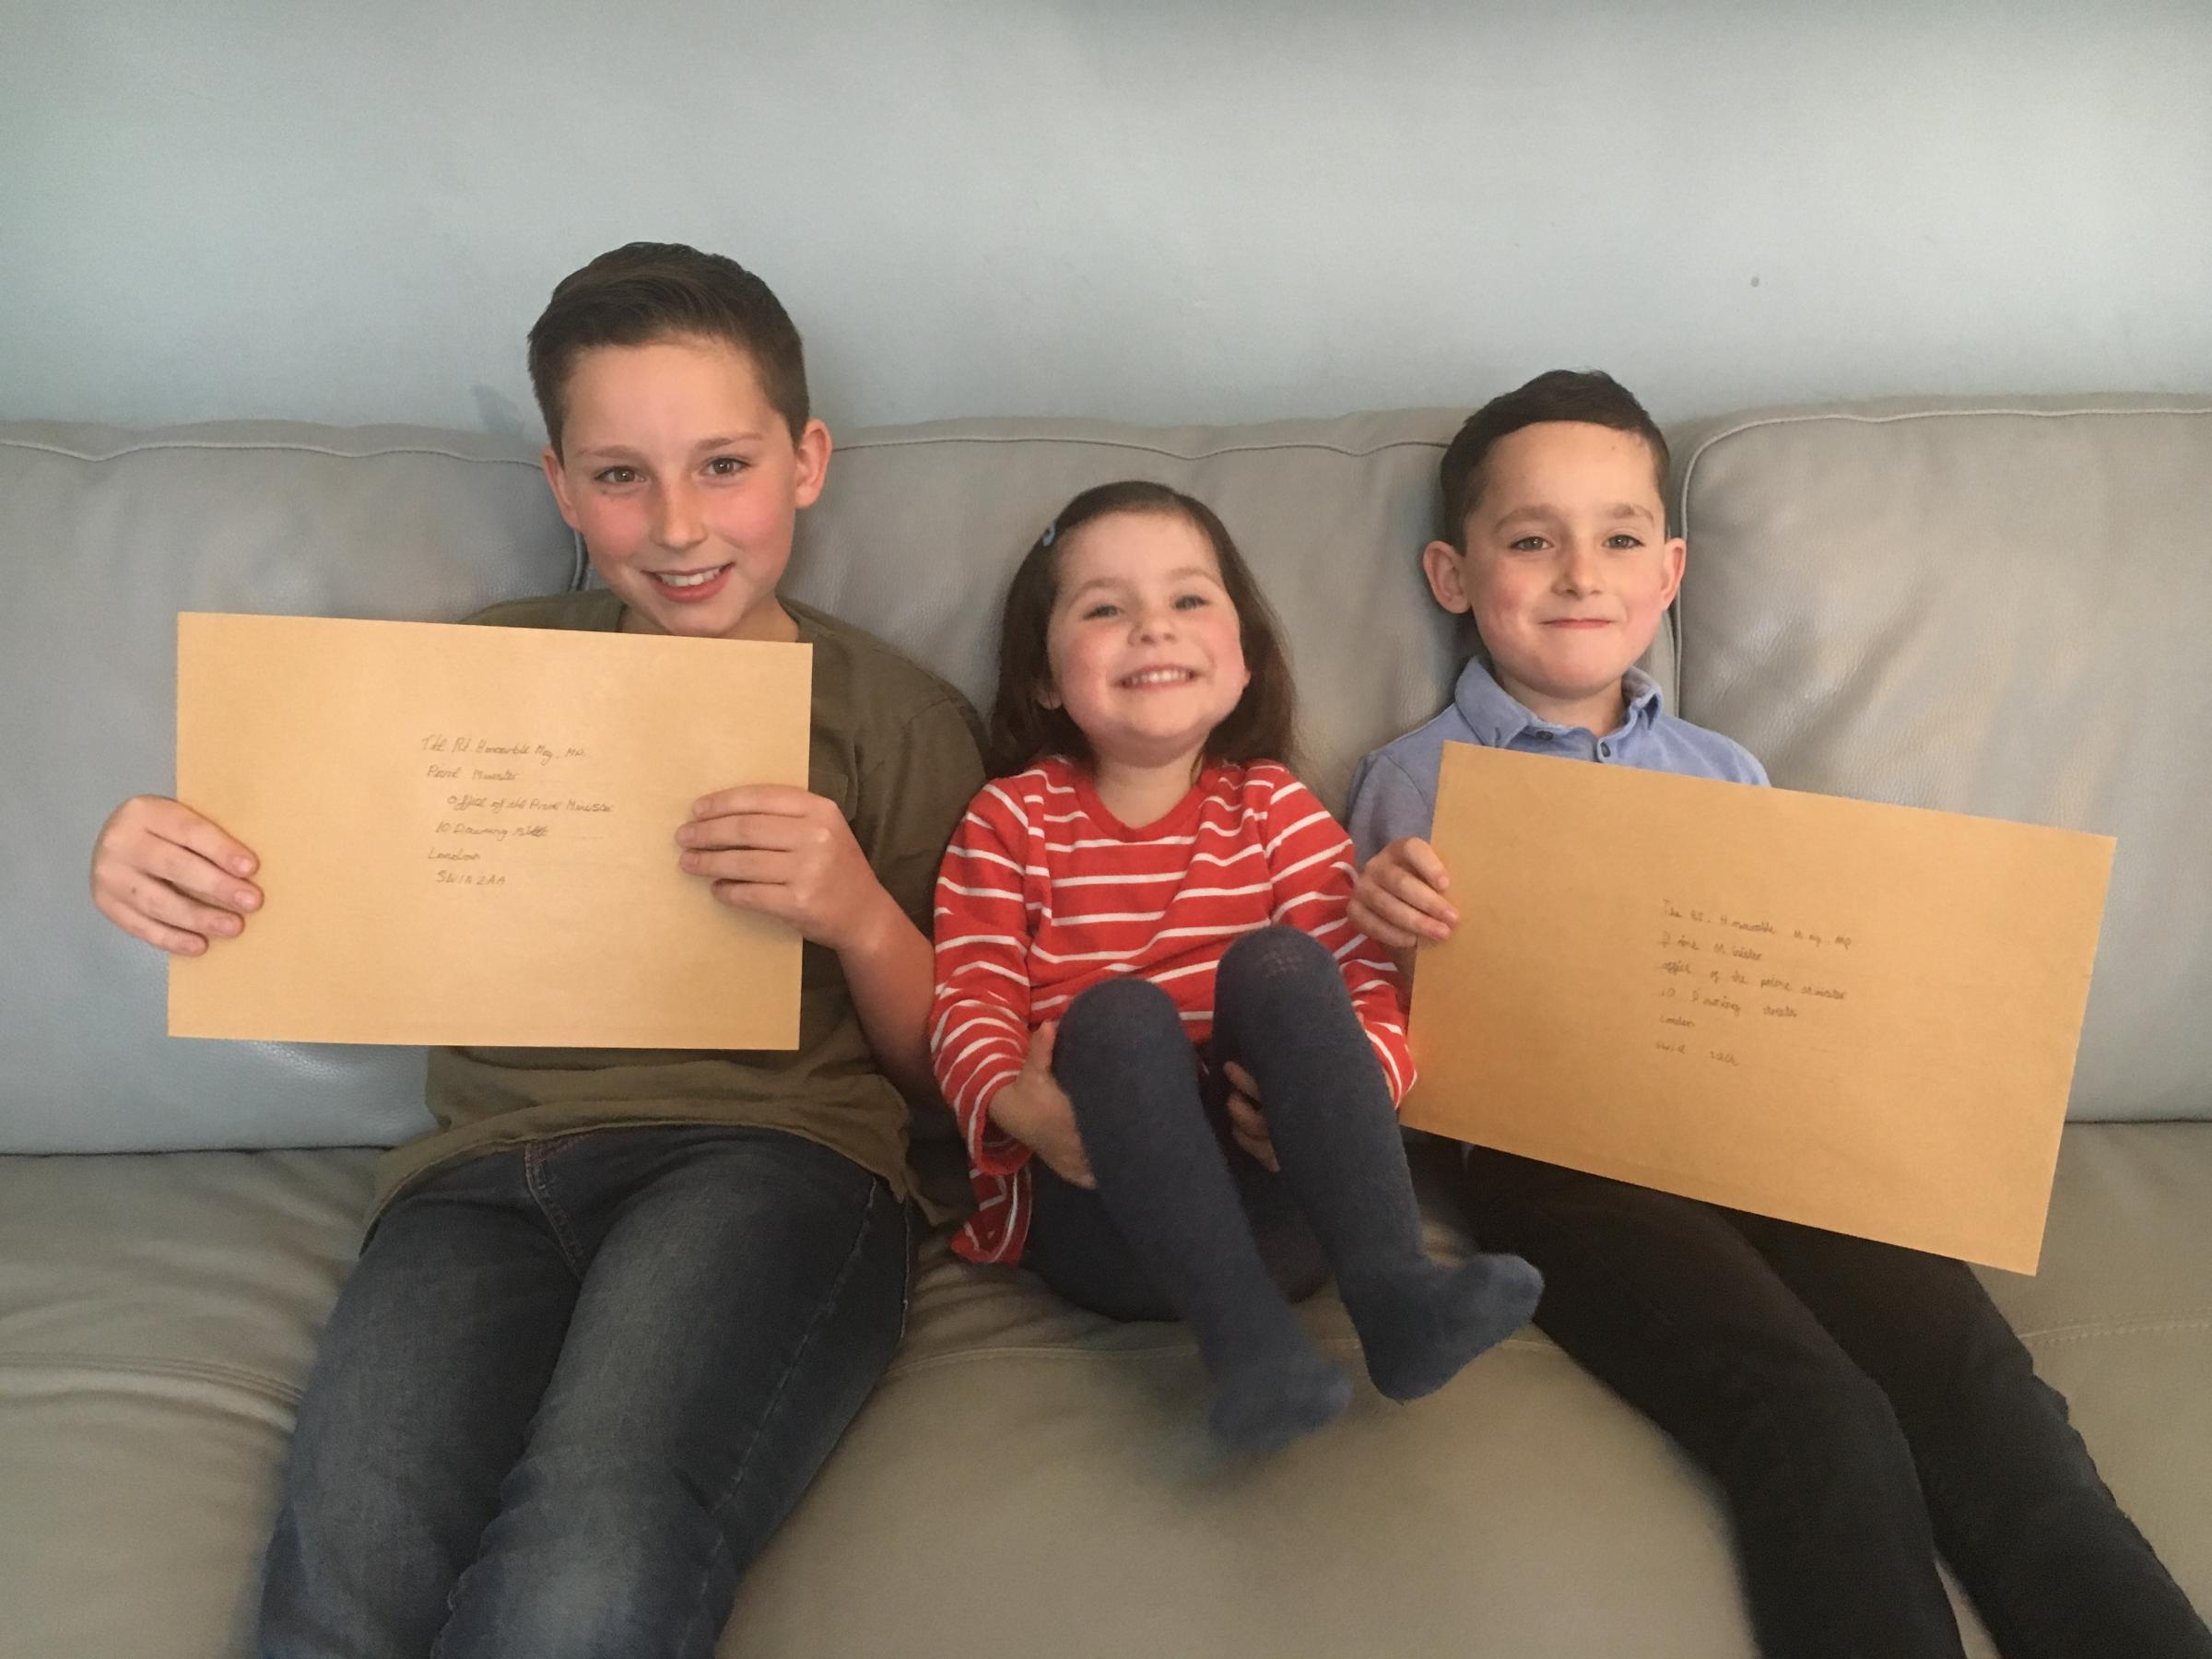 Brothers Finley, left, and Oscar Brennan holding their letters for Theresa May, inset, with sister Annabelle. Photo by Ross Arnott